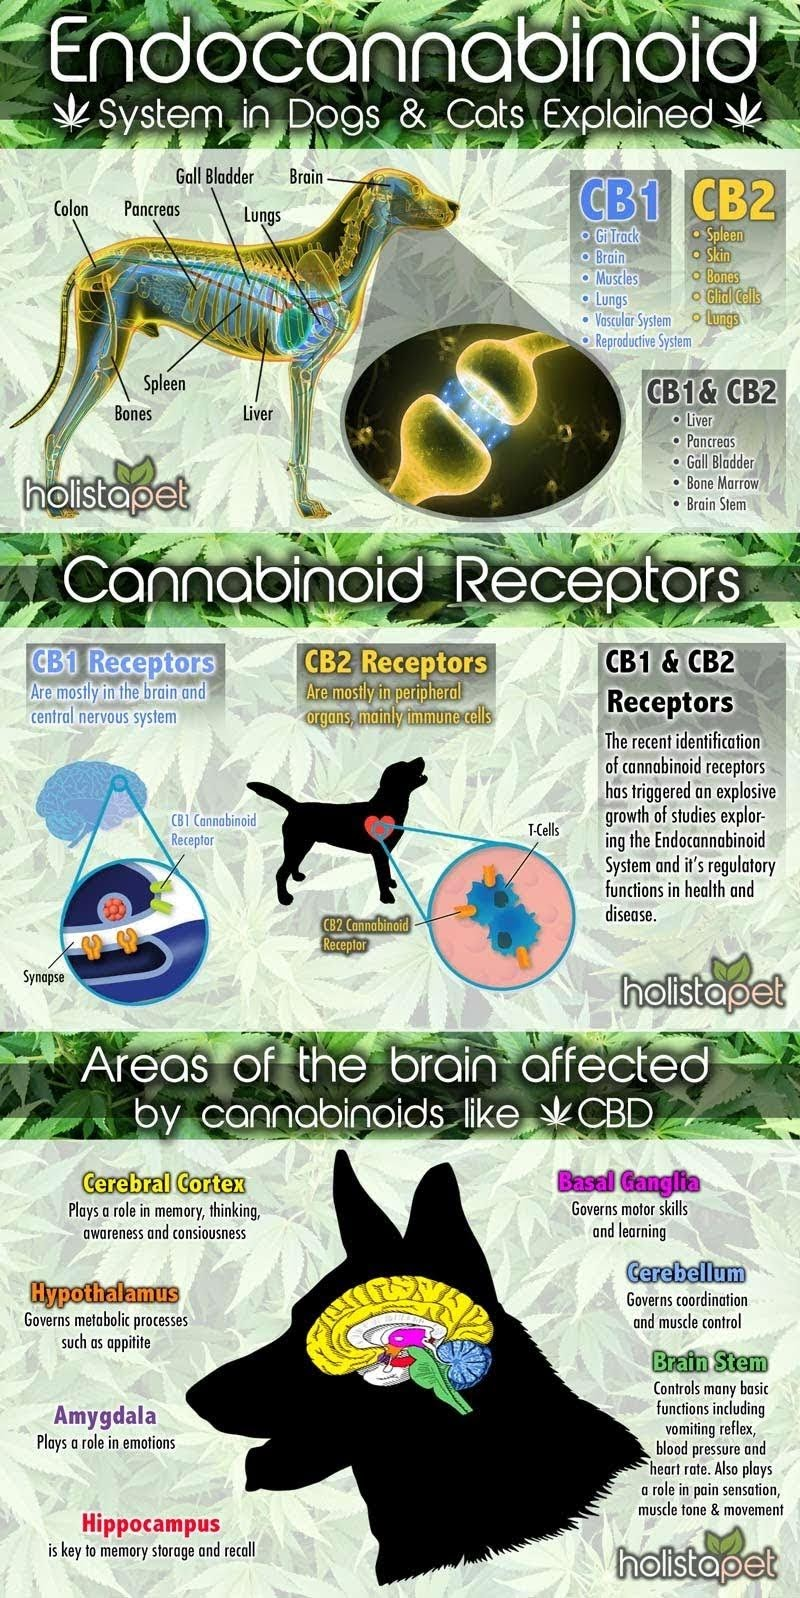 Endocannabinoid system explained in dogs and cats #infographic